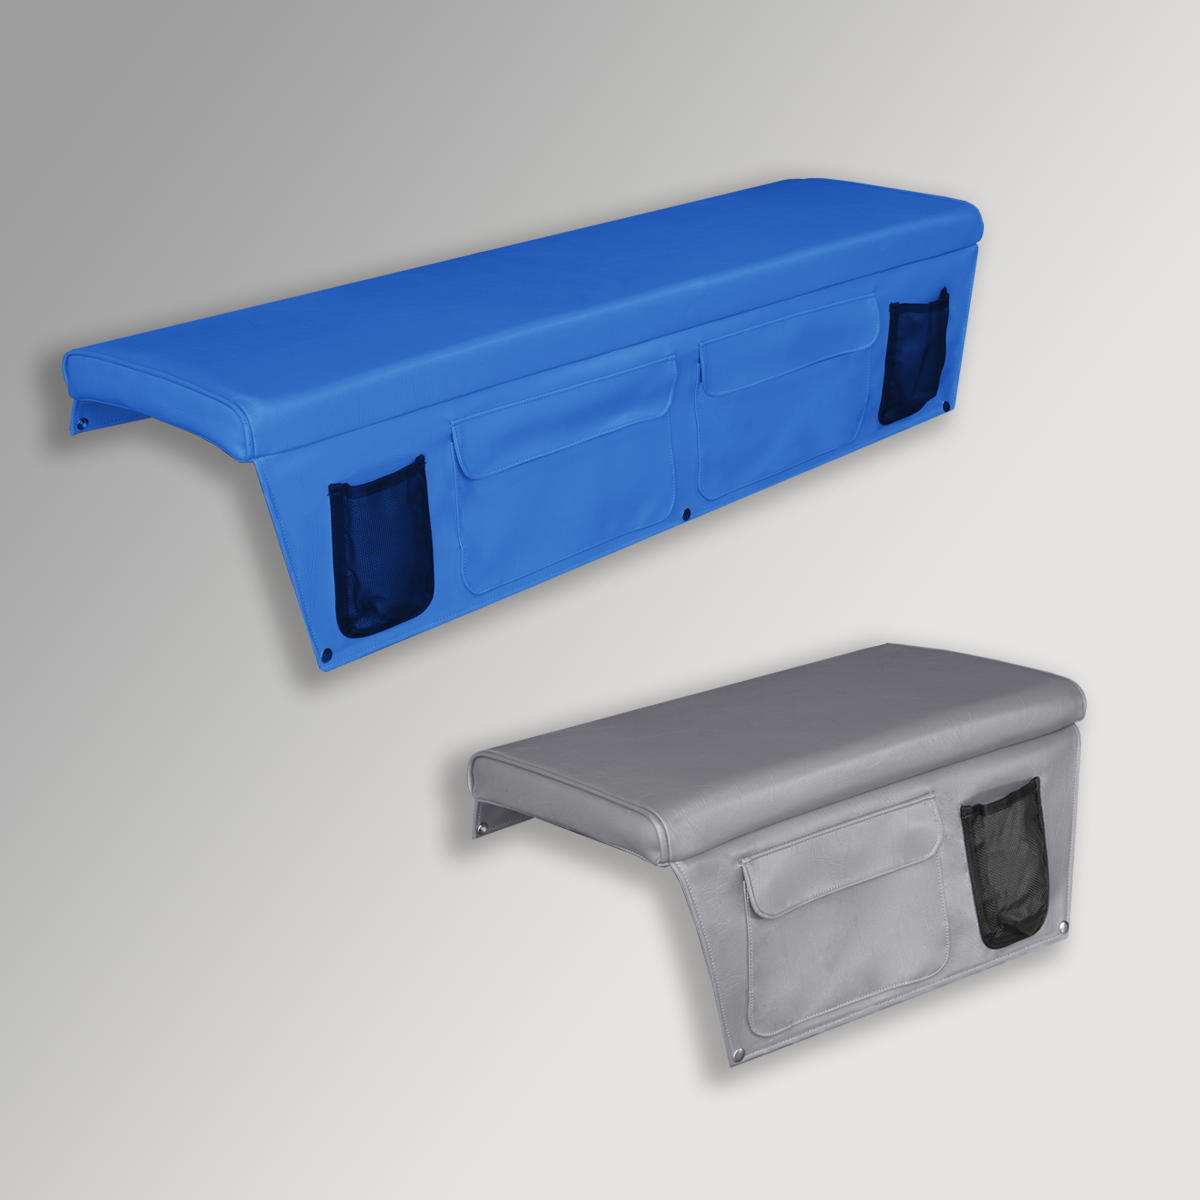 Boat Bench Cushions with Side Pockets